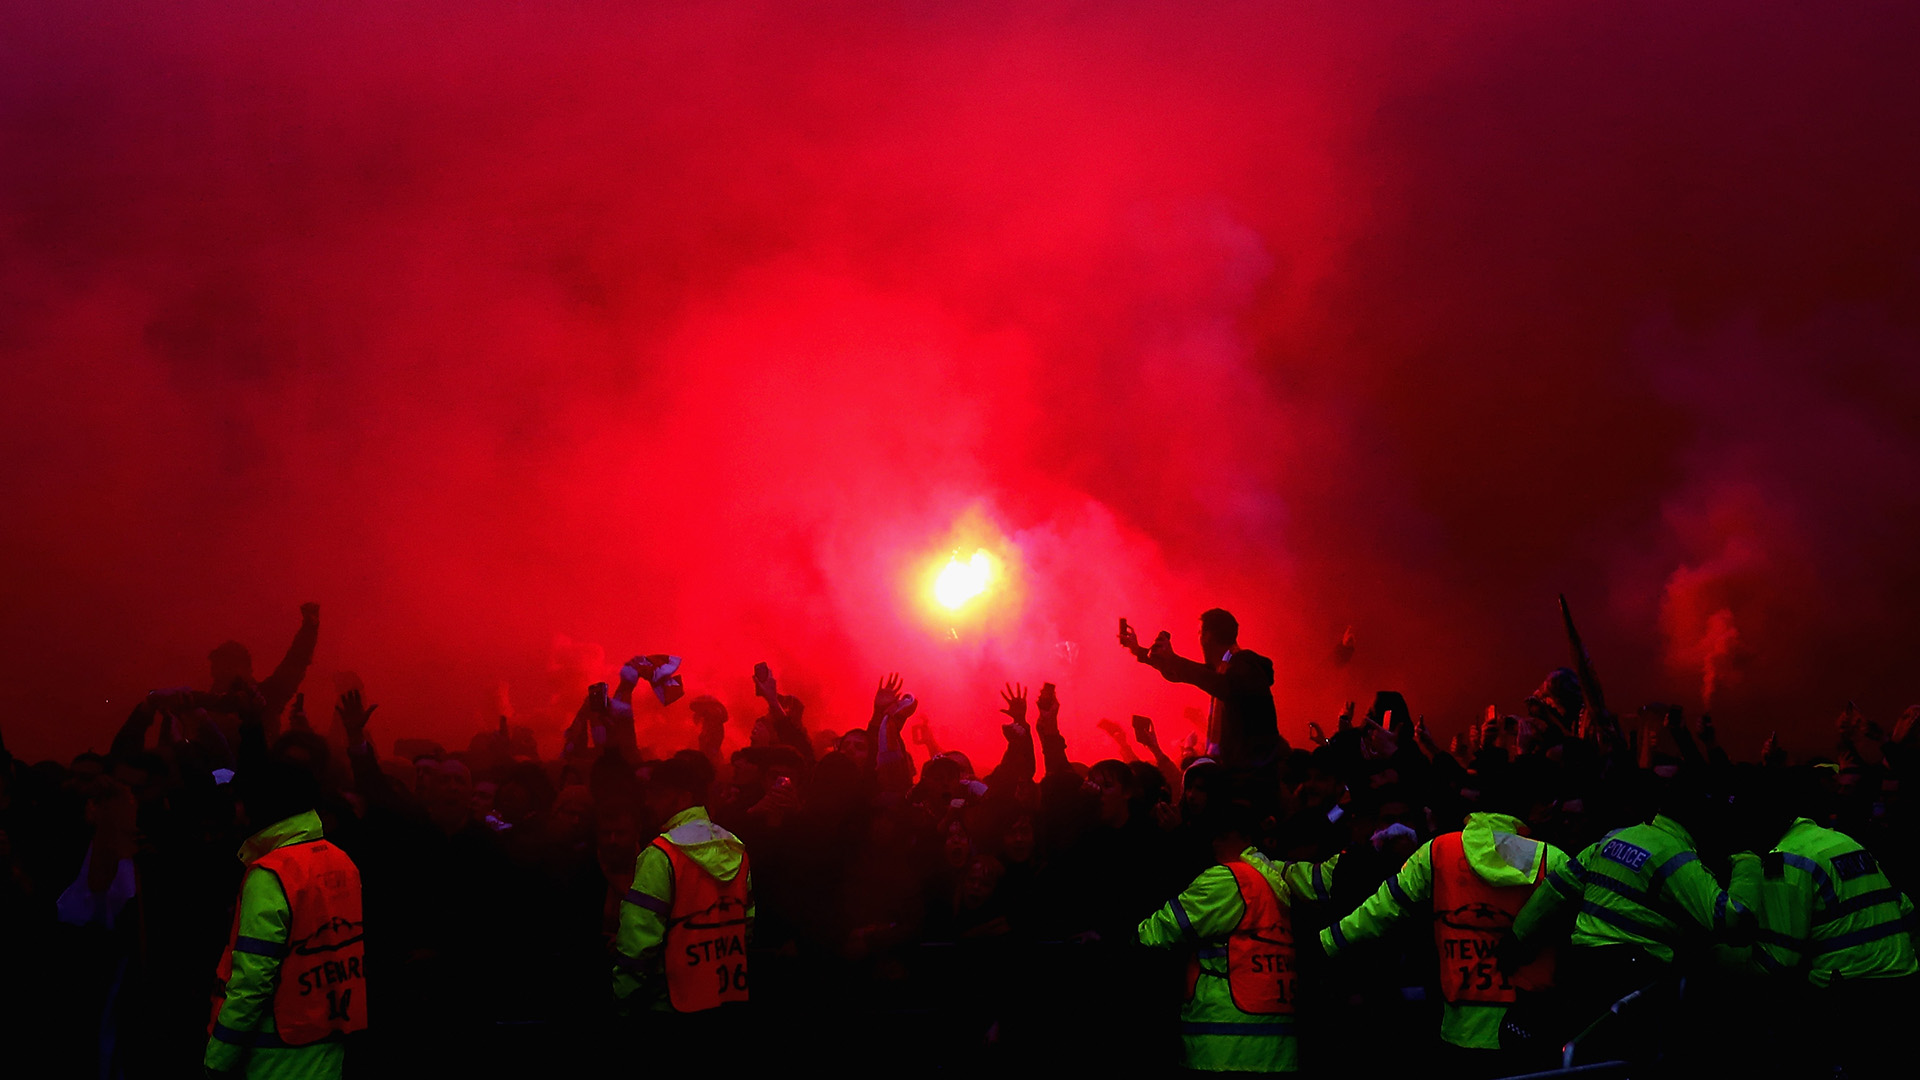 Liverpool Roma fans